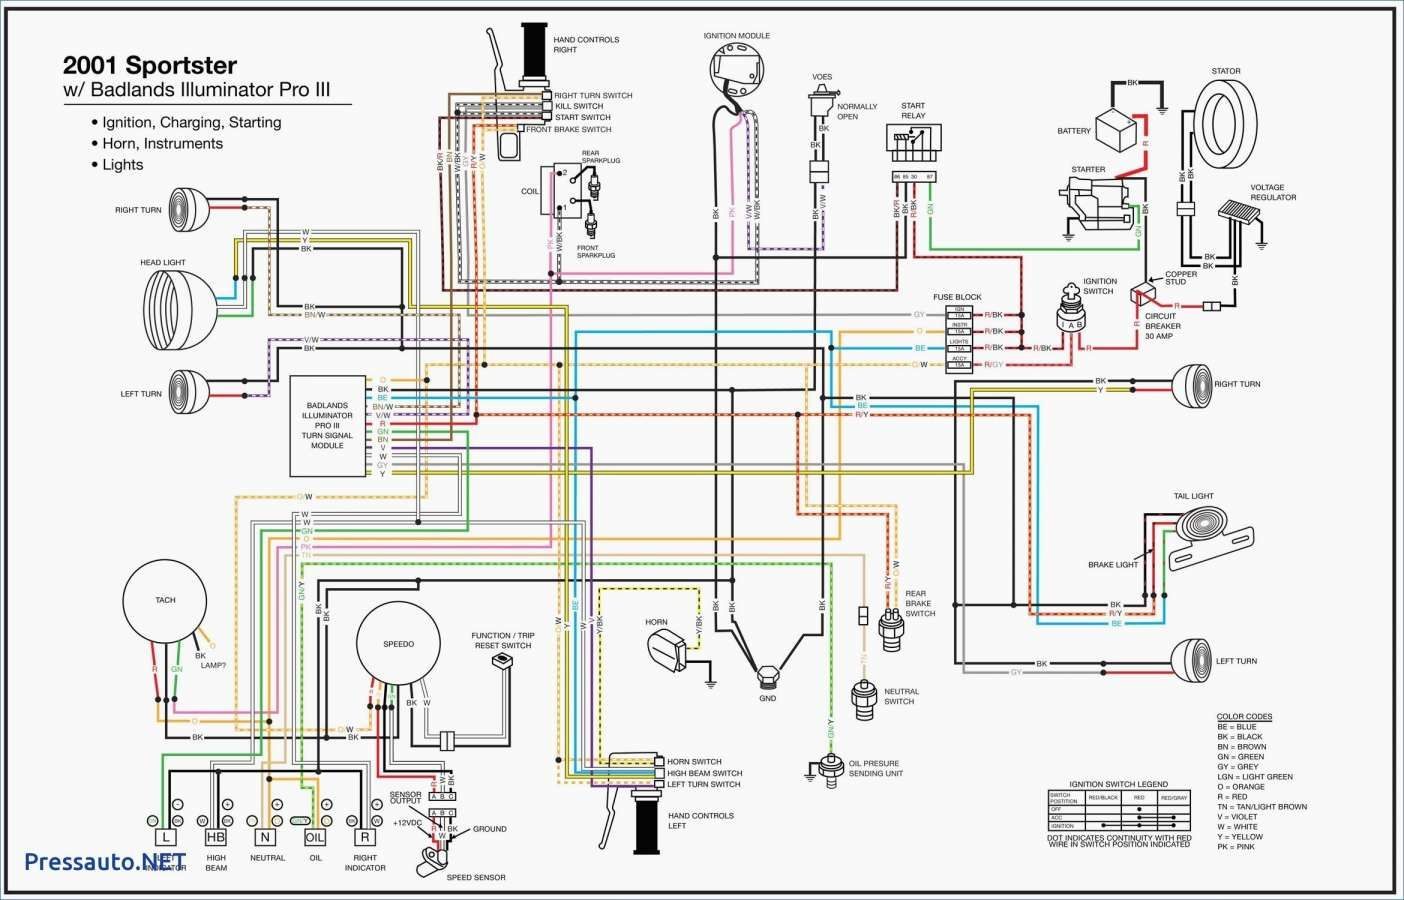 [SCHEMATICS_48ZD]  17+ 1995 Bmw 325I Engine Wiring Diagram - Engine Diagram in 2020 (With  images) | Bmw e46, Electrical diagram, Telecaster custom | Buell Motorcycle Turn Signal Wiring Diagram |  | Pinterest